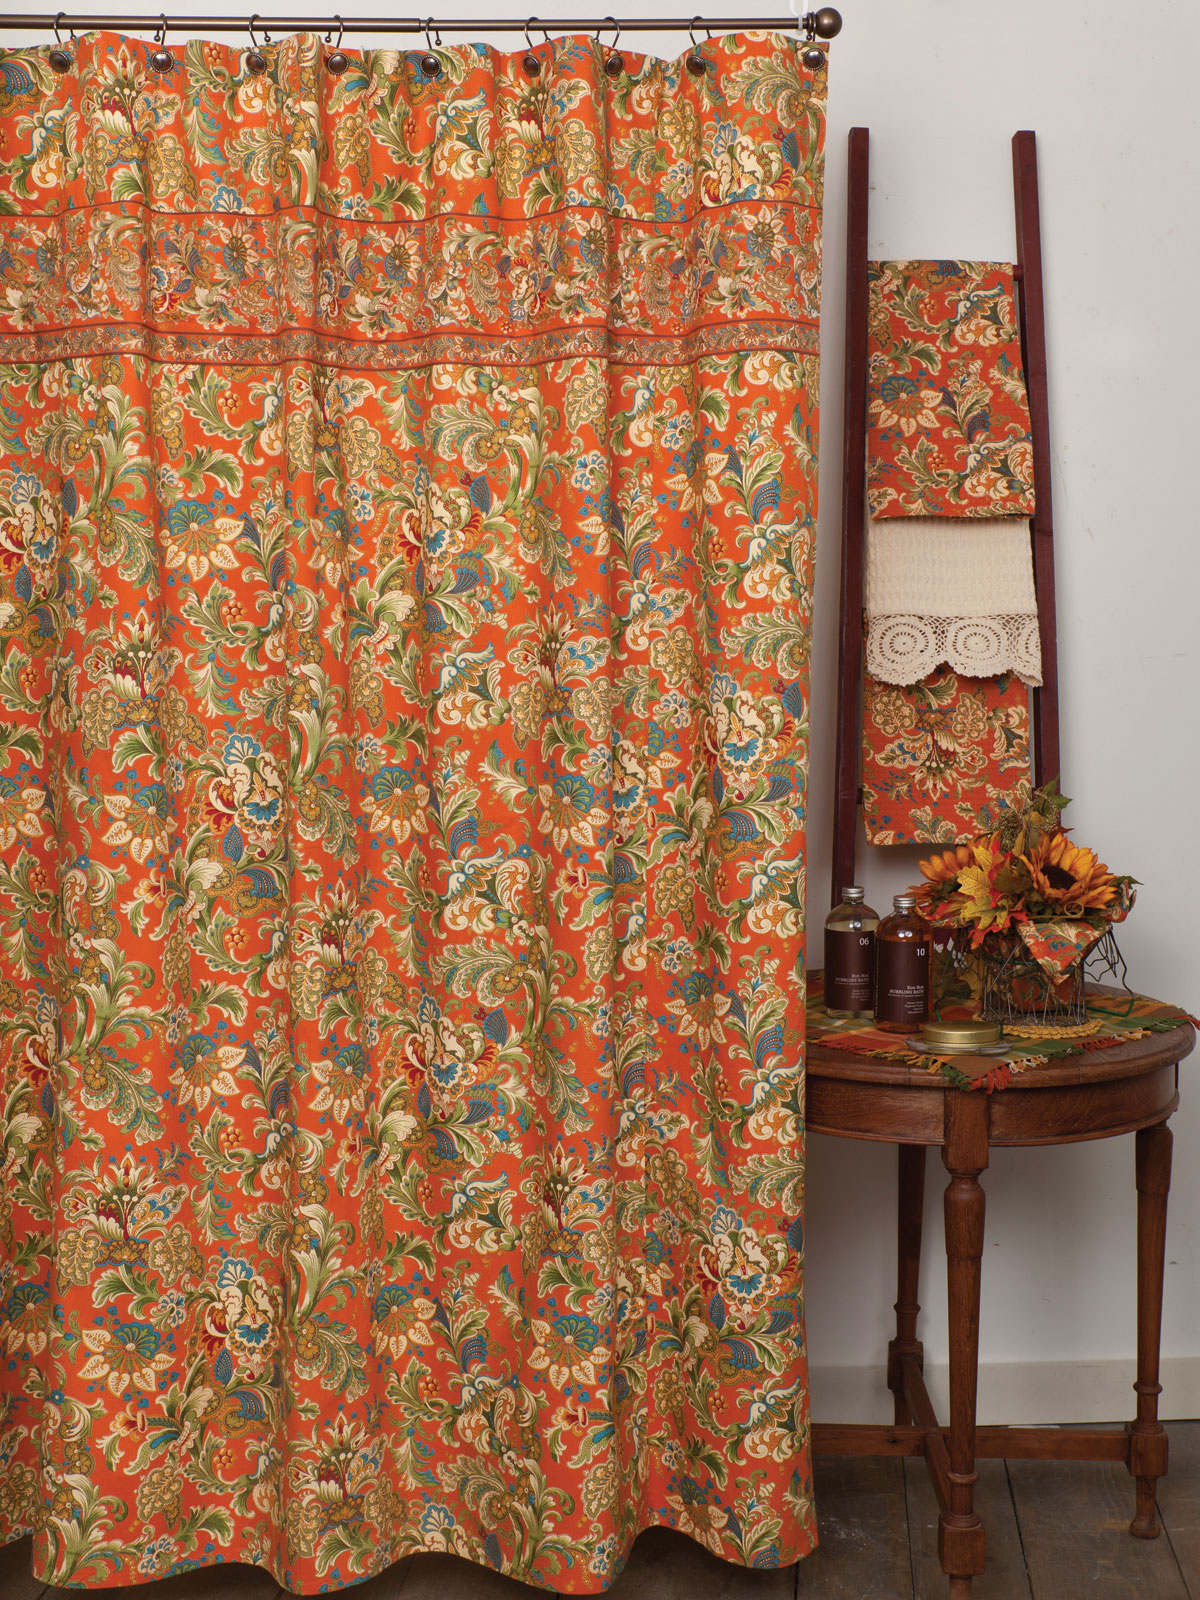 jacob 39 s court shower curtain your home curtains